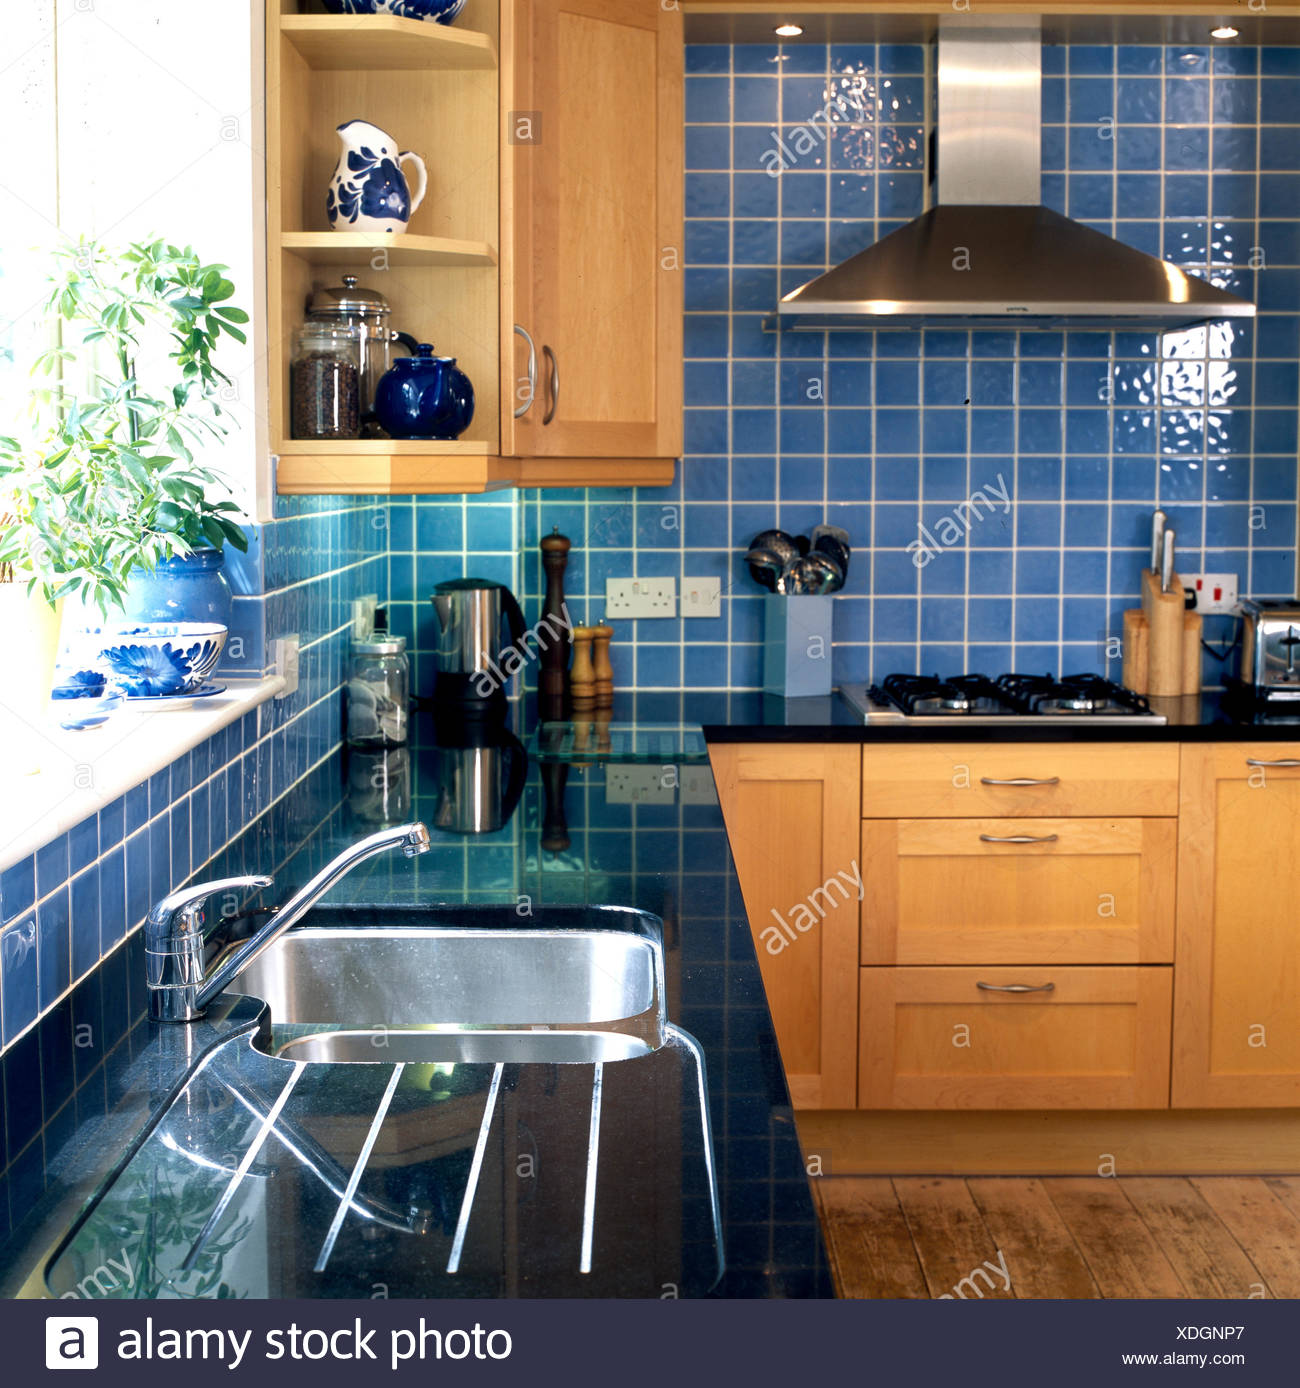 Blue Tiled Kitchen With Black Counter Top Stock Photo Alamy